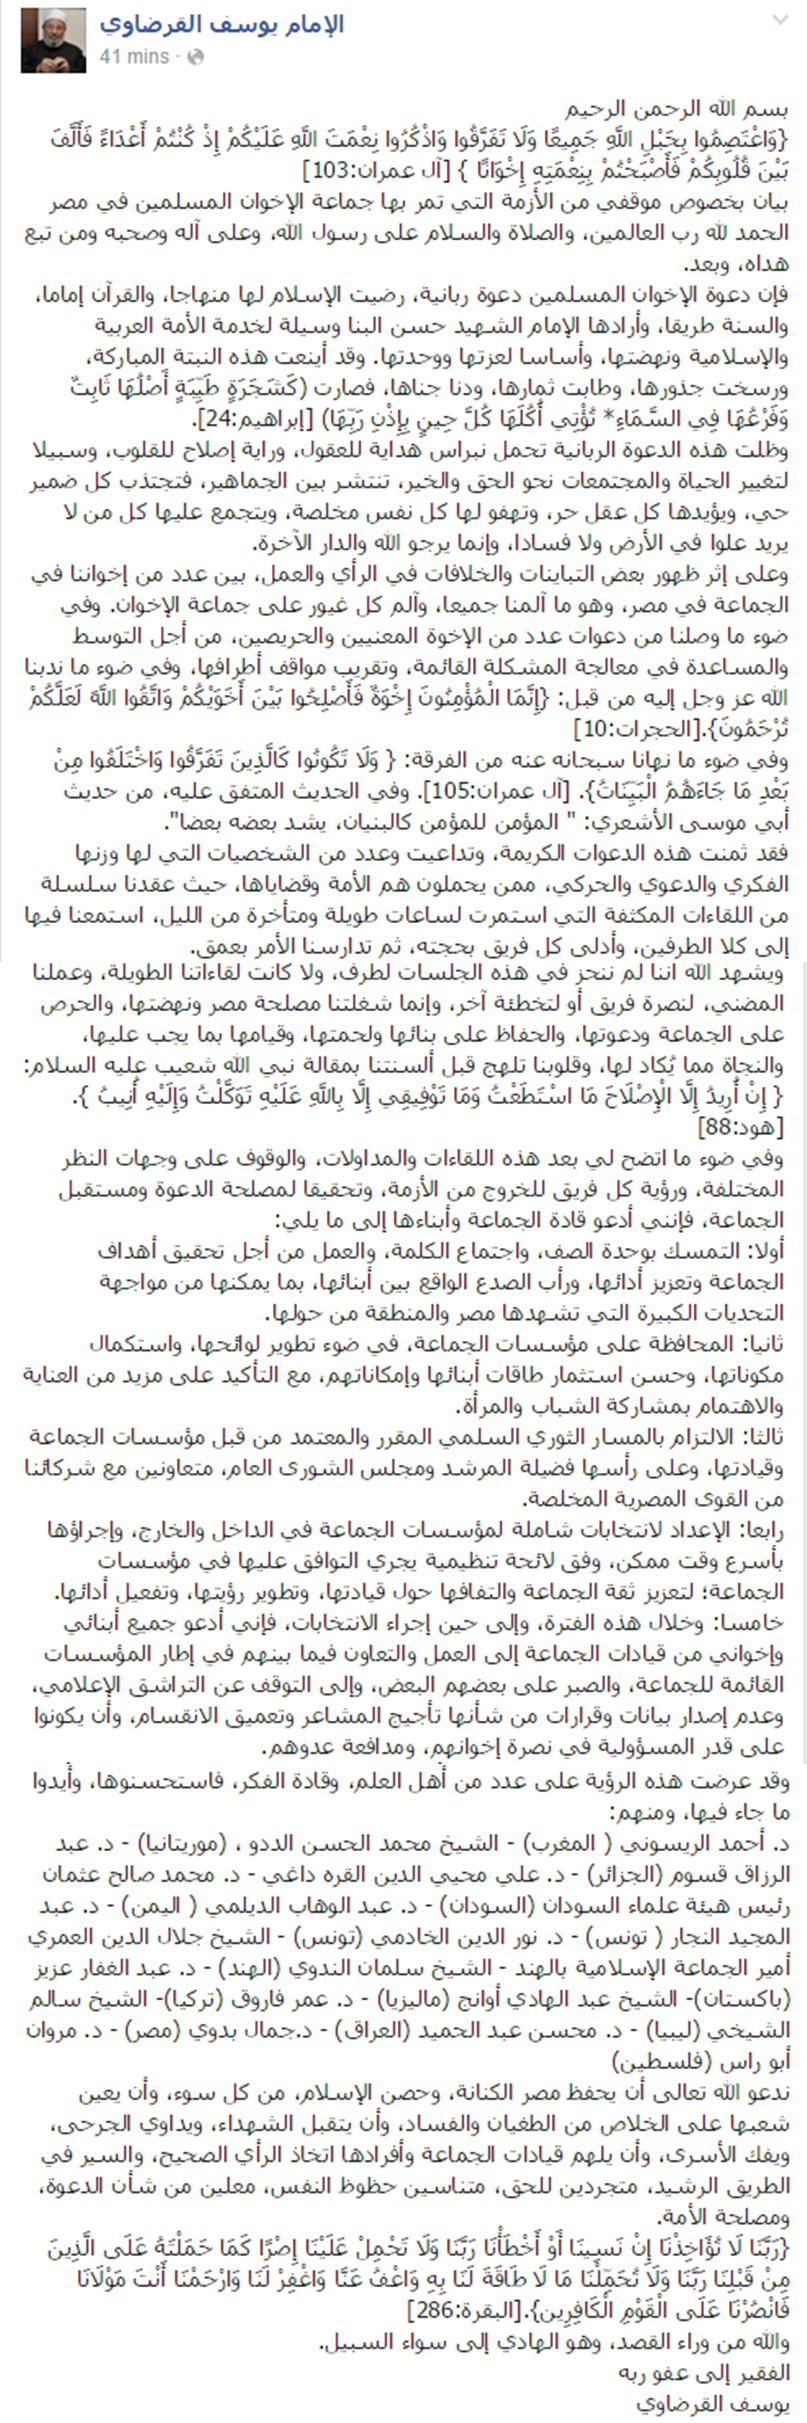 Qaradawi's statement